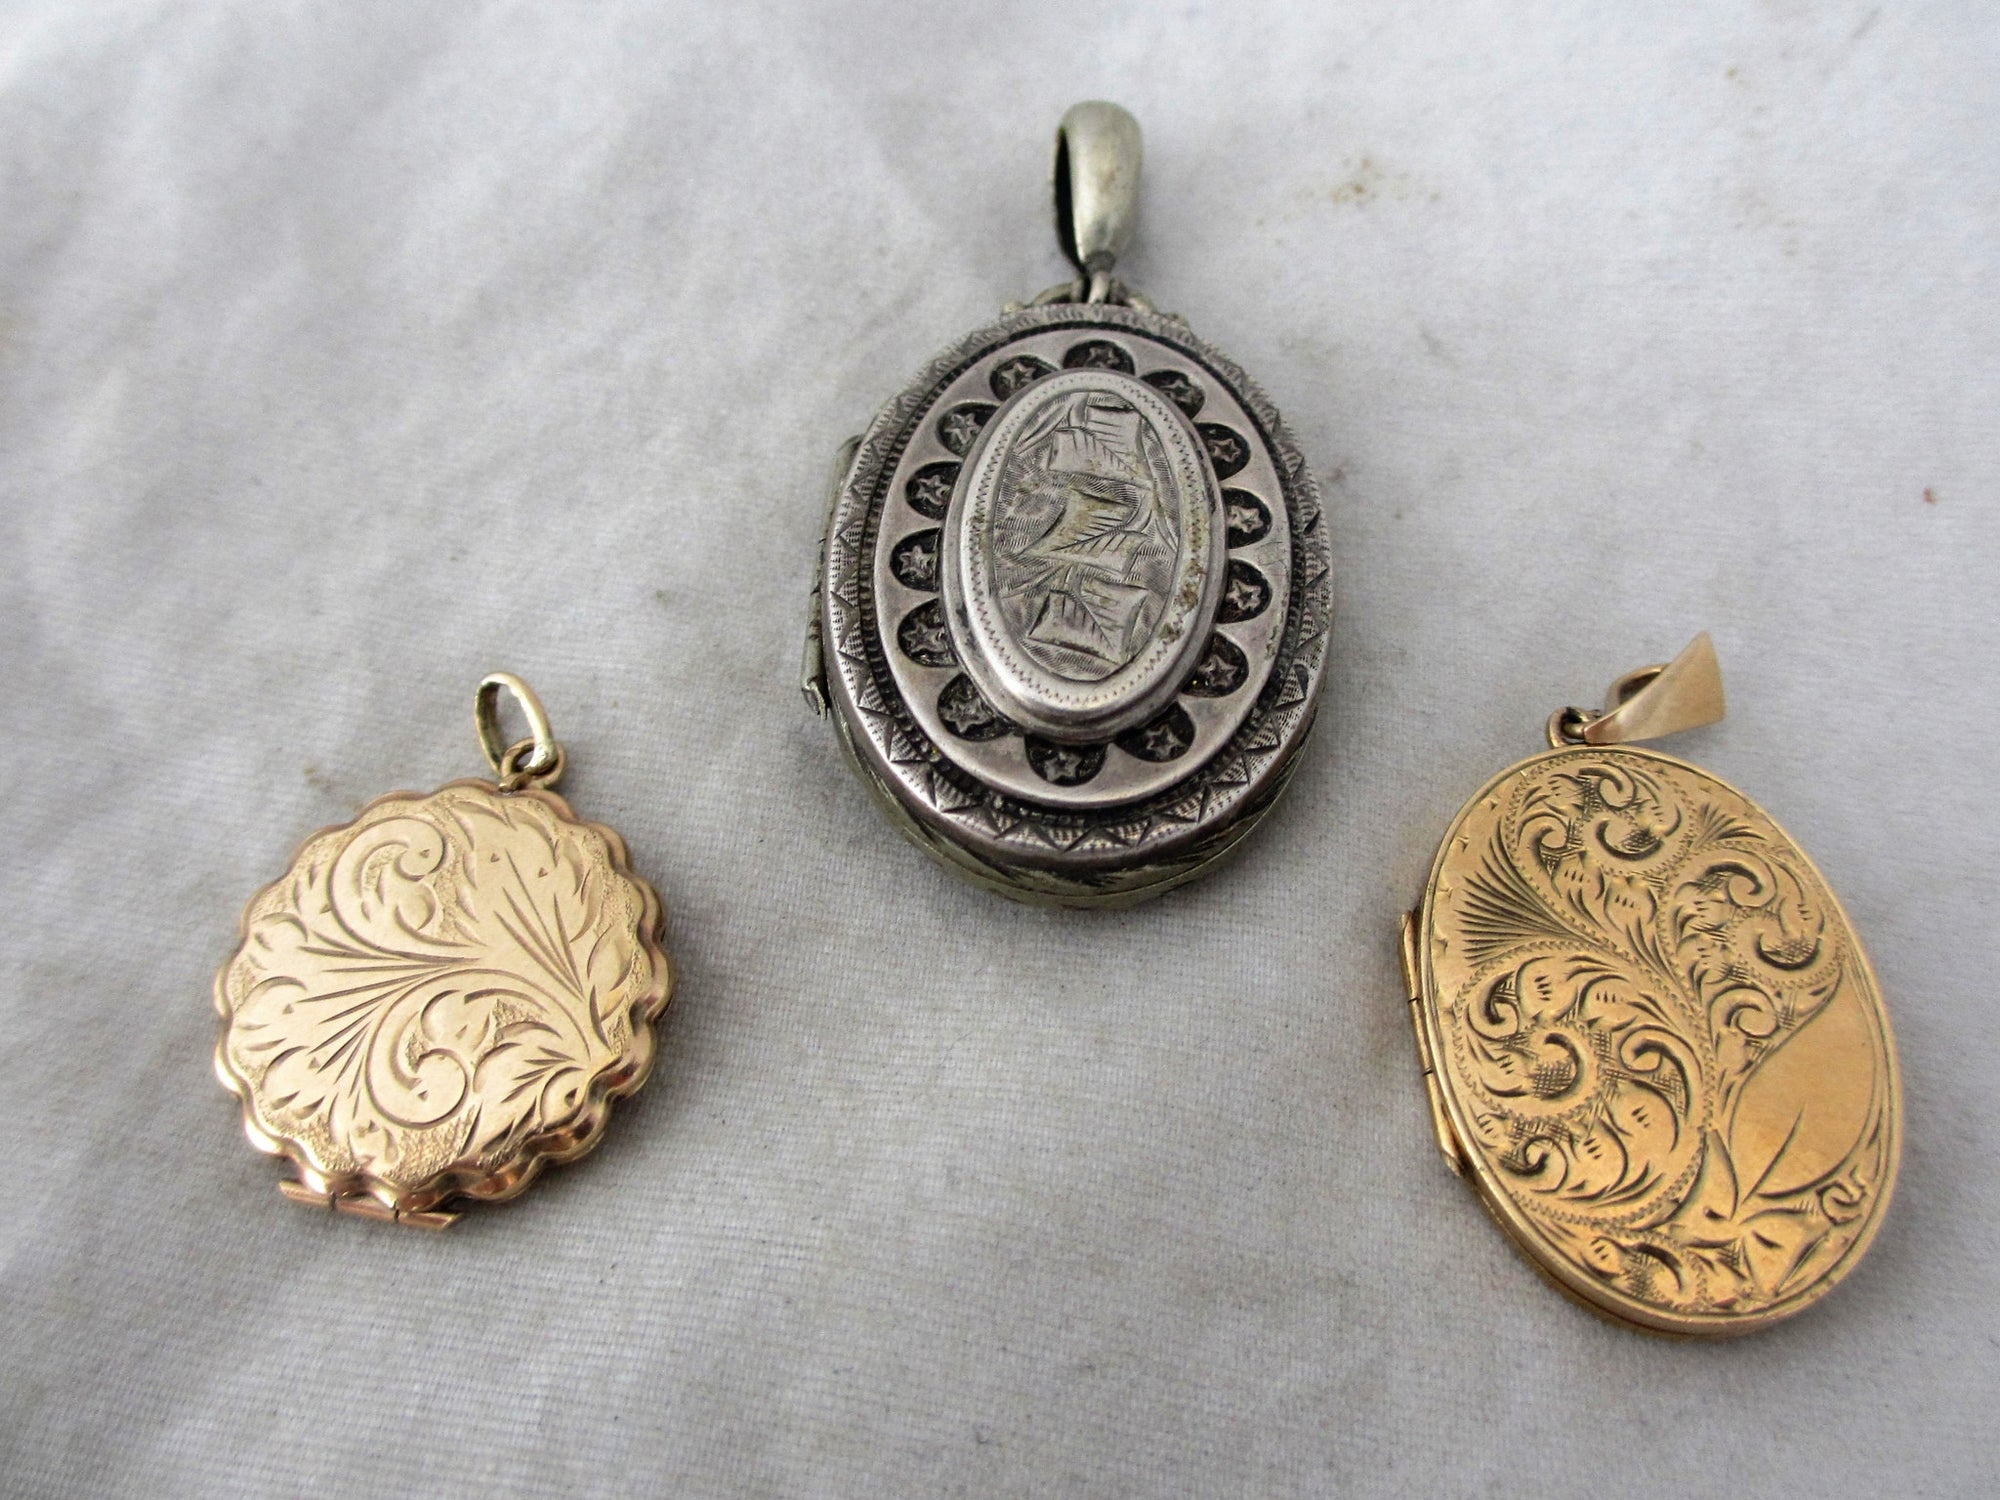 Antique and Vintage Lockets